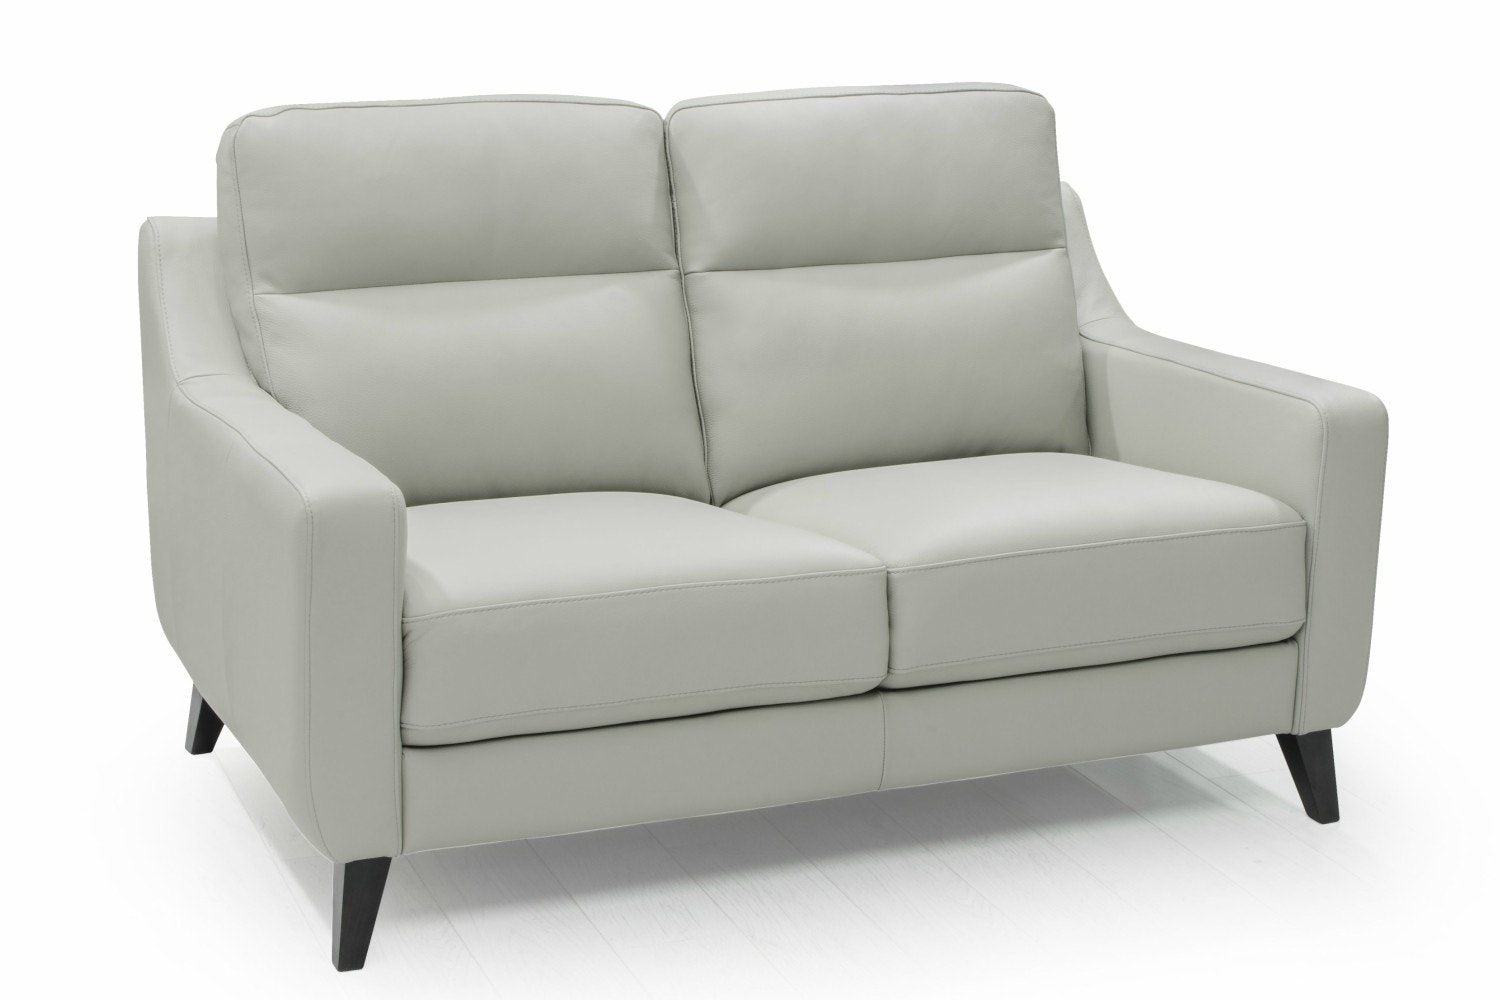 Borgo 3 Seater Leather Sofa | Grey